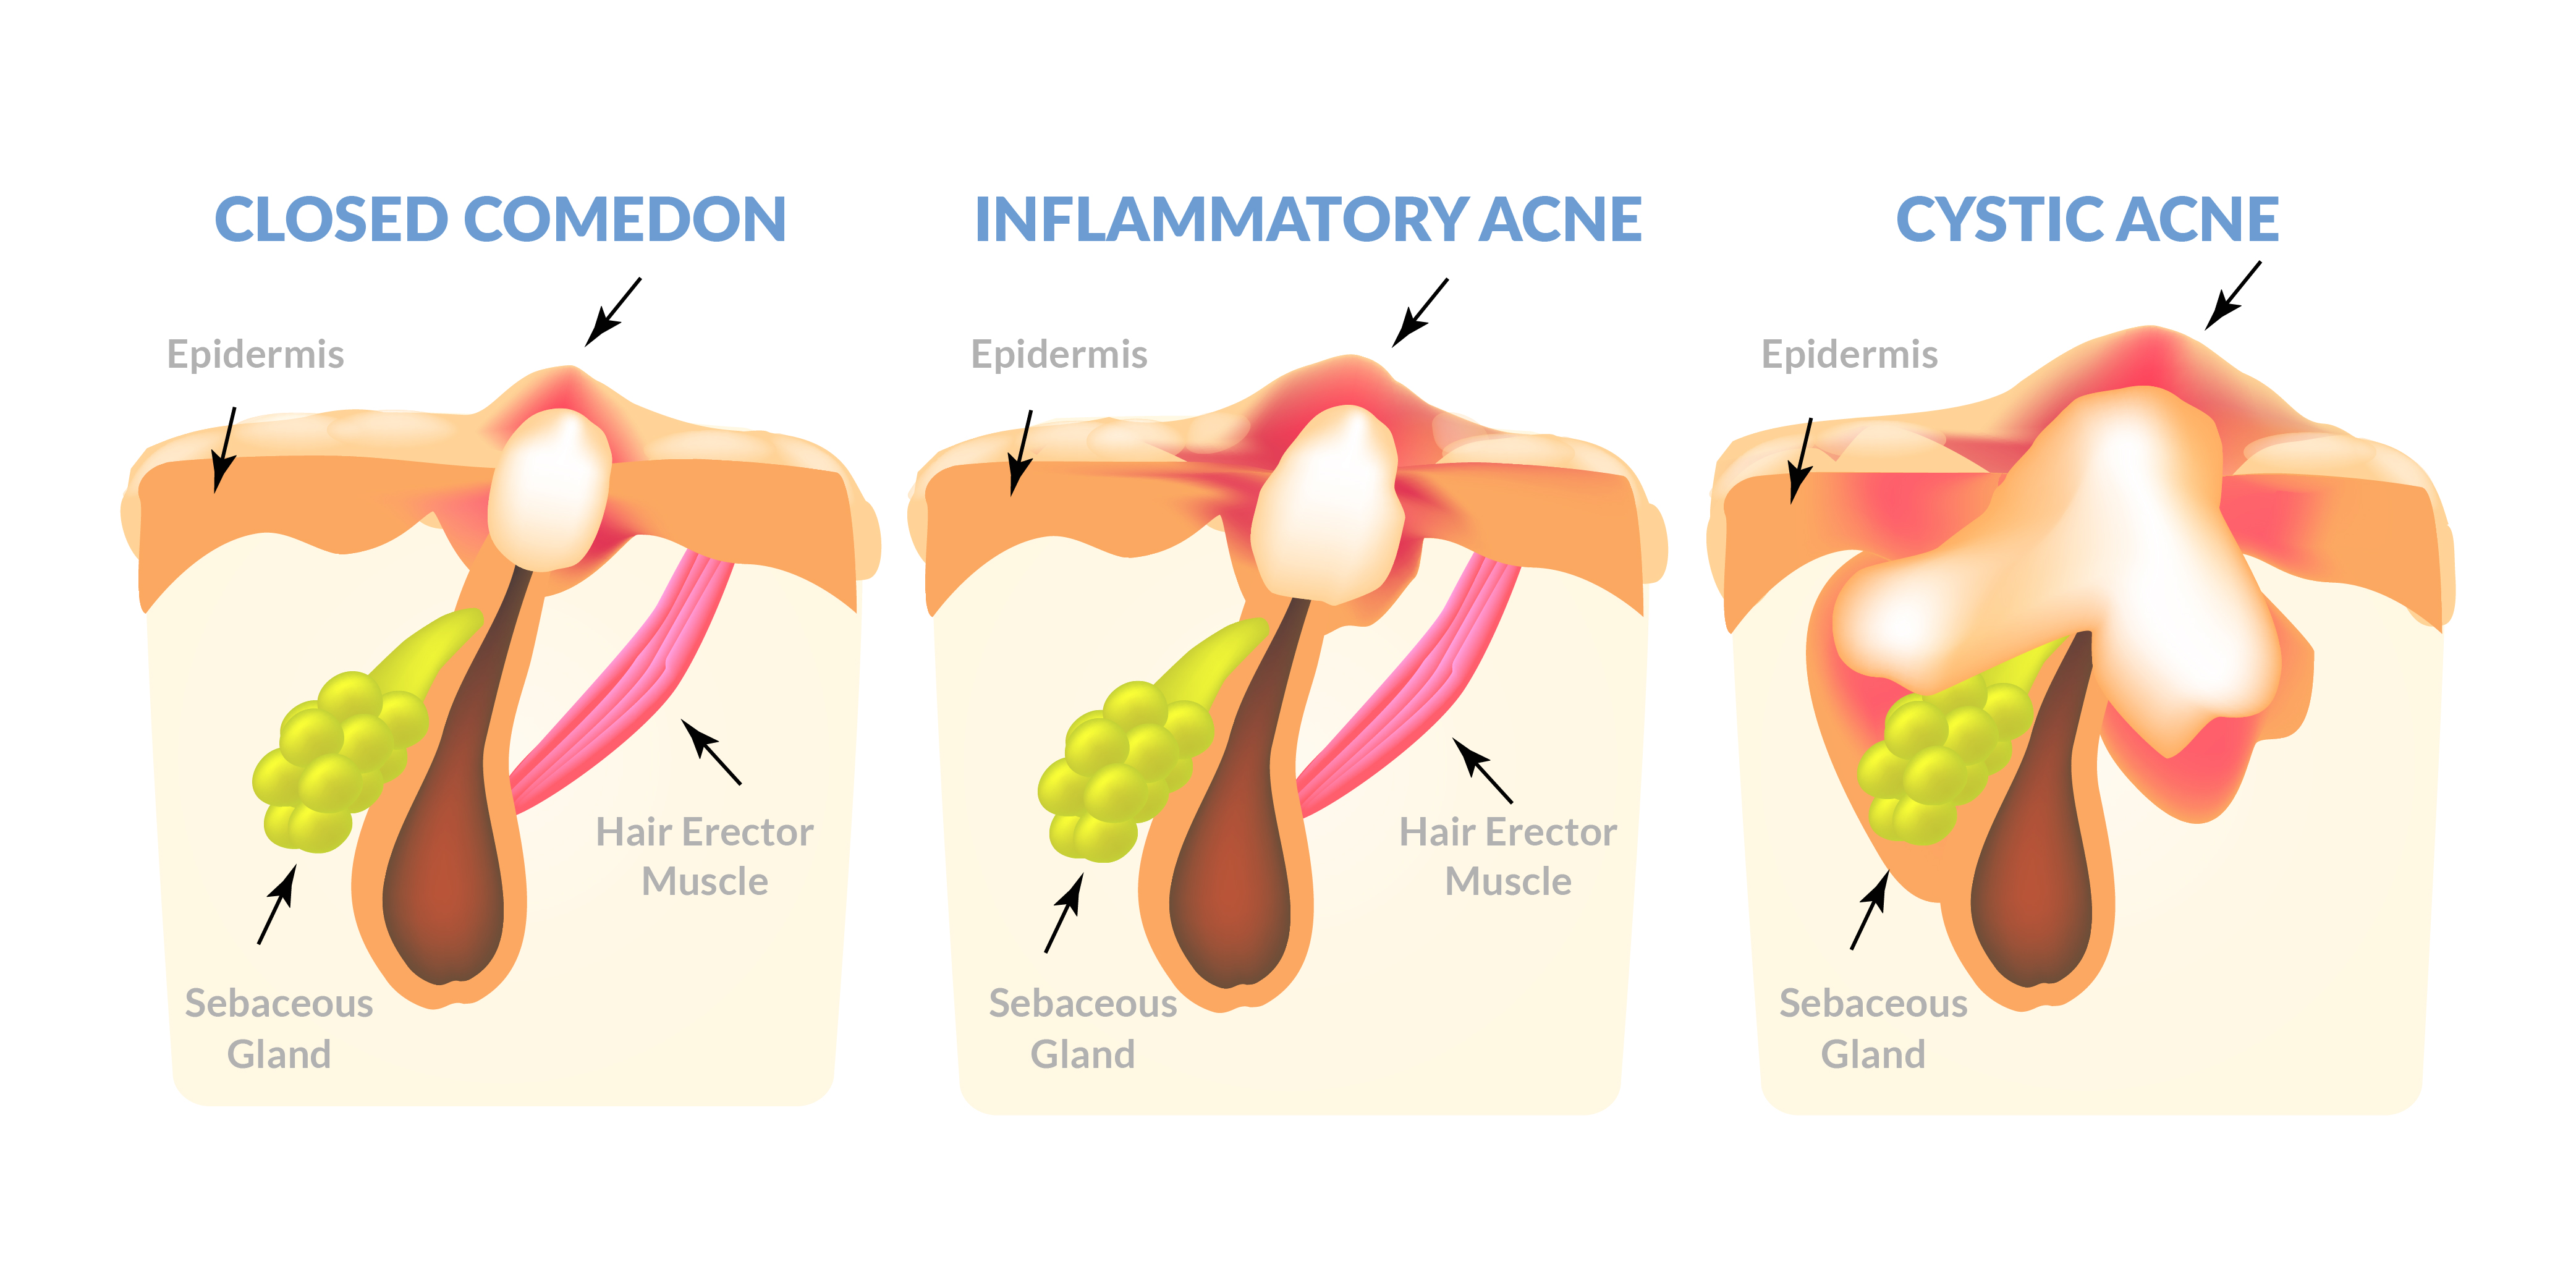 illustrations of 3 kinds of acne: closed comedon, inflammatory acne and cystic acne